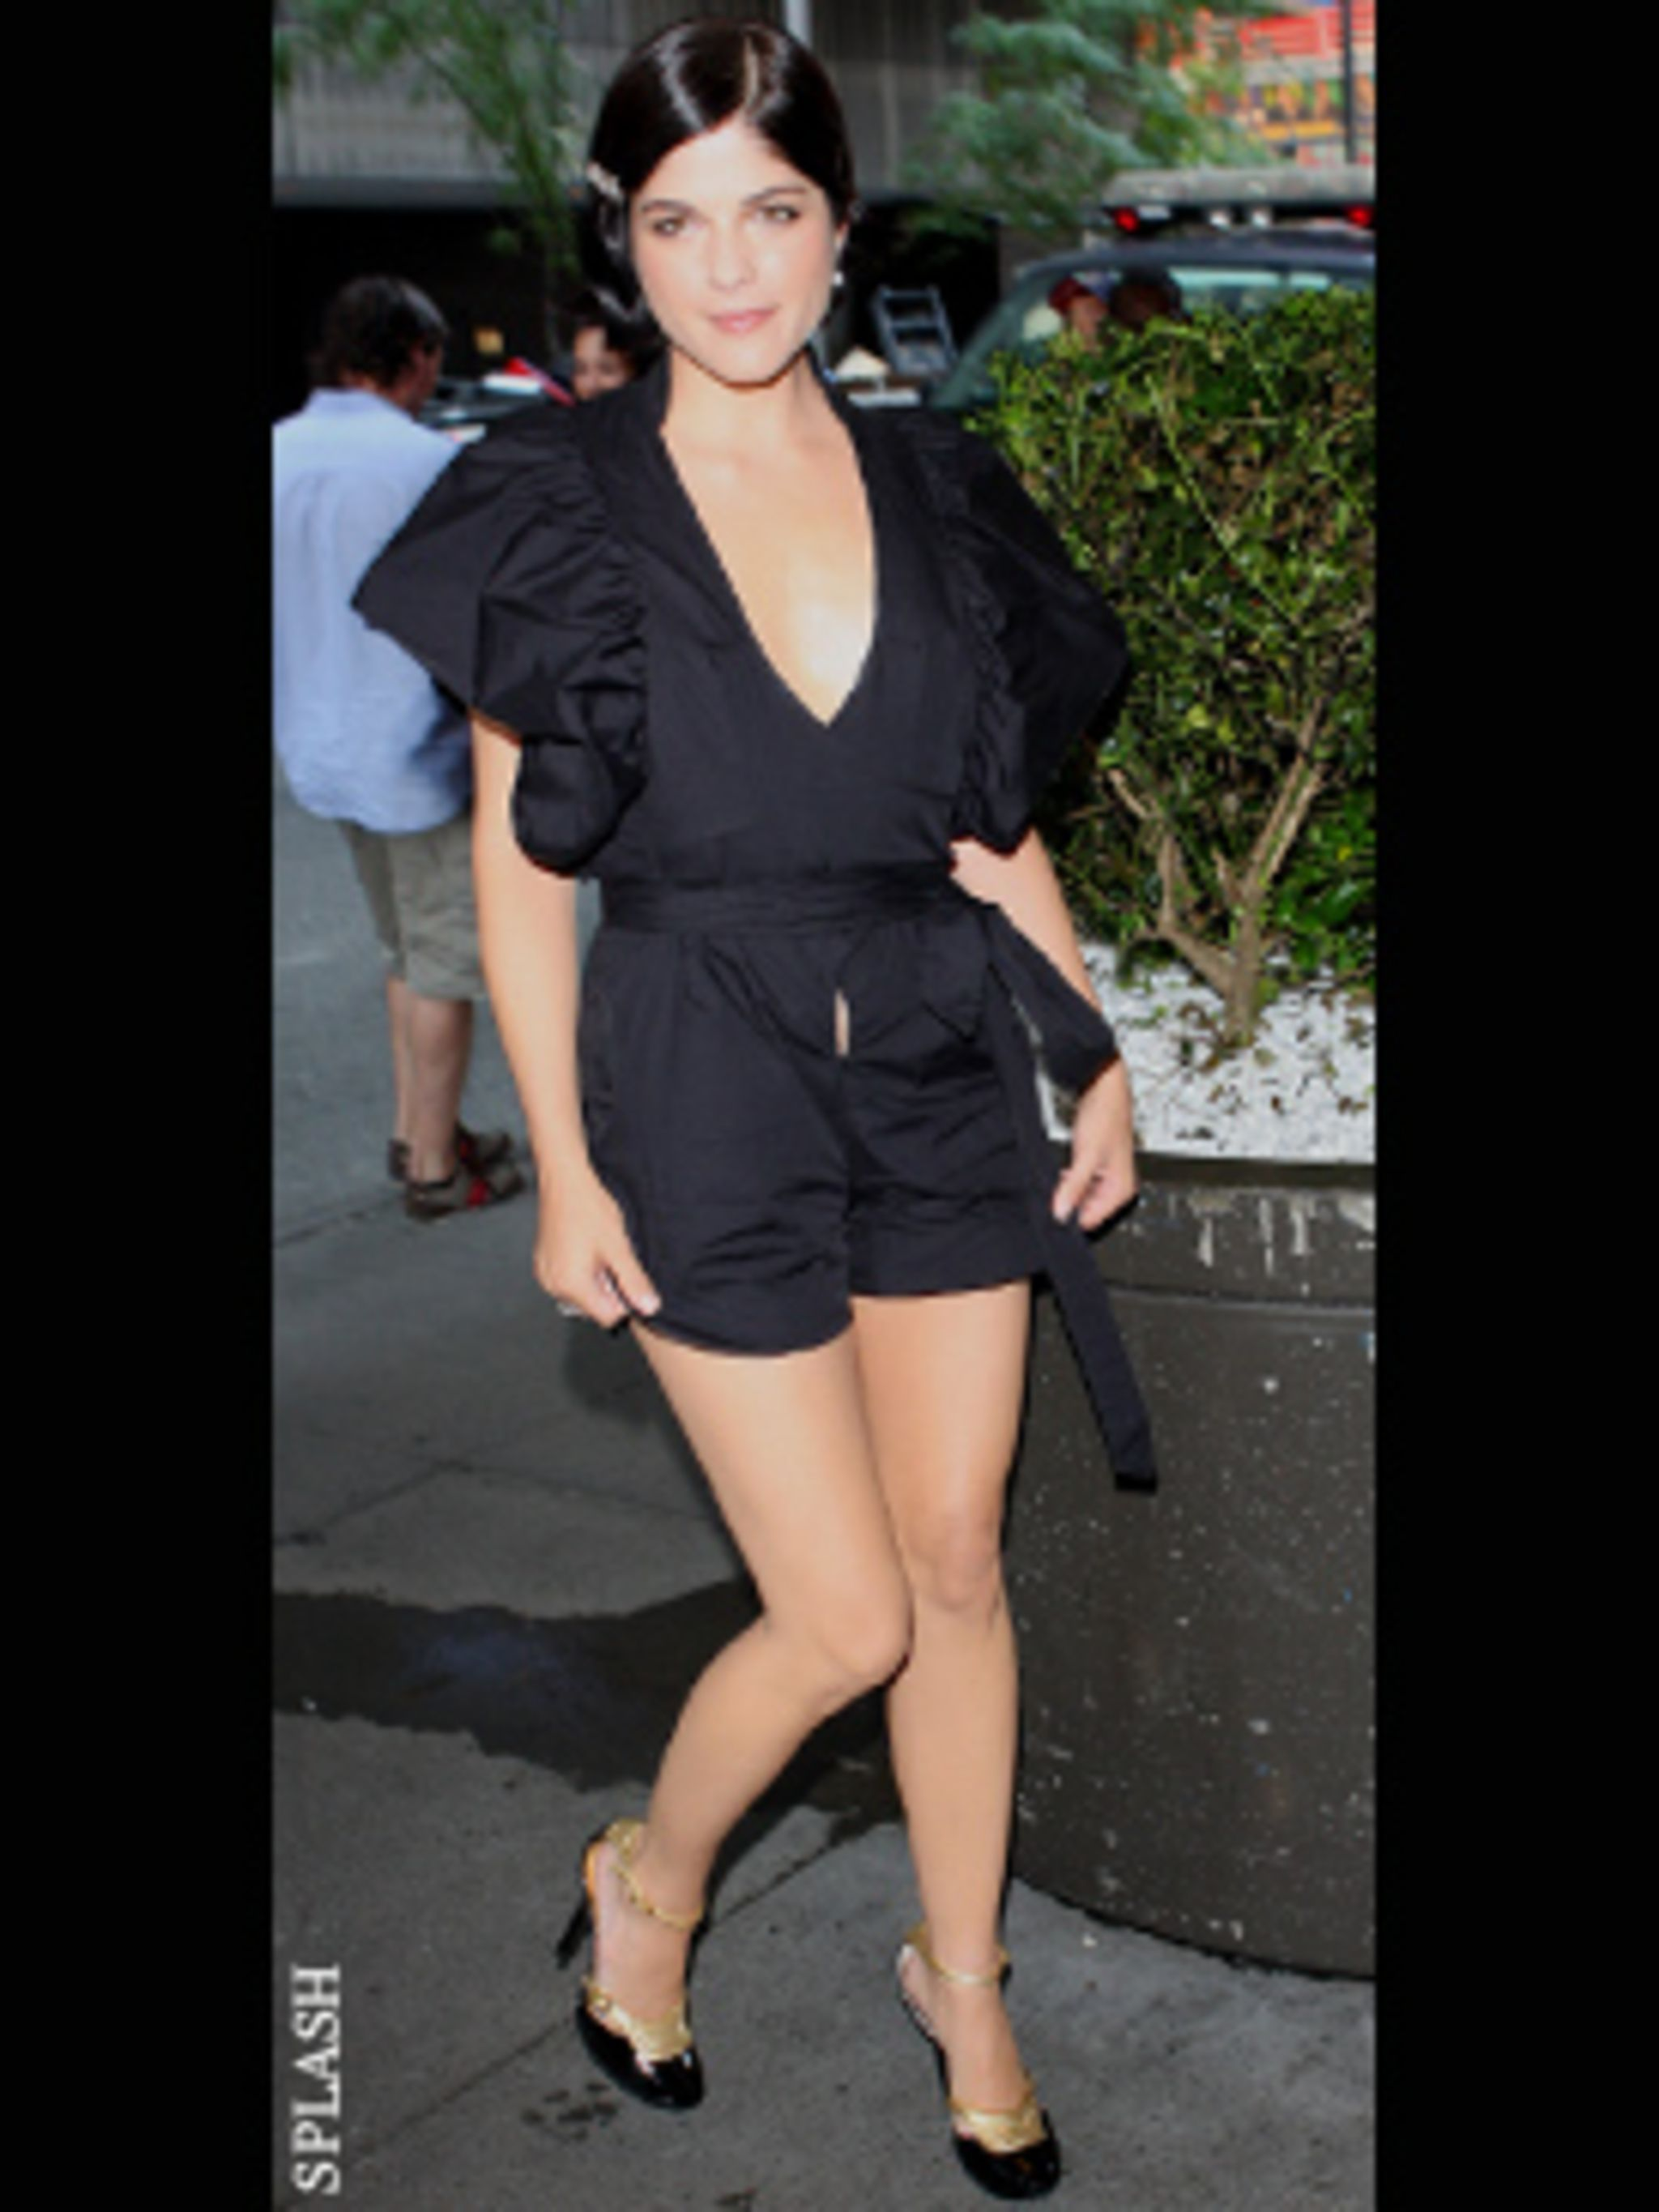 <p>Selma Blair teams her playsuit with a twenties style finger wave for the ultimate in modern flapper girl chic.</p>